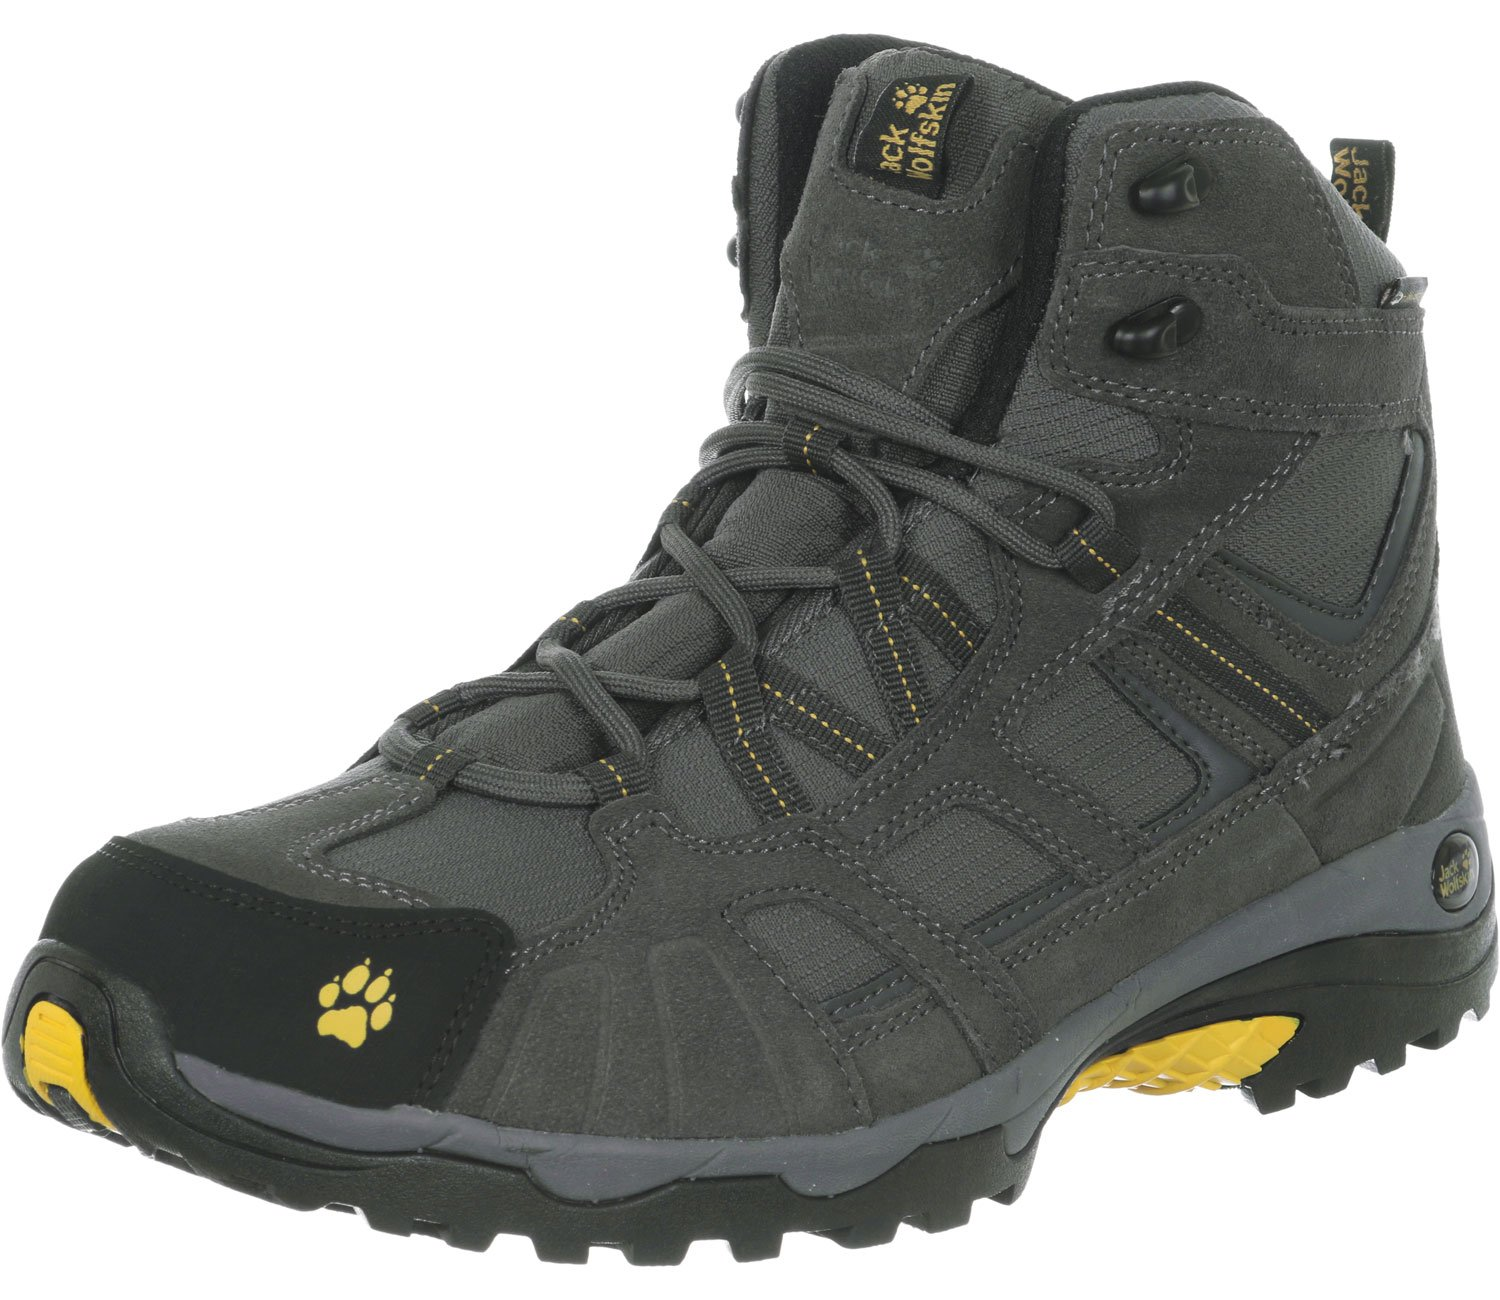 9a0d19c33c4dea Jack Wolfskin Men s Vojo Hike Mid Texapore Low Rise Shoes - The ...